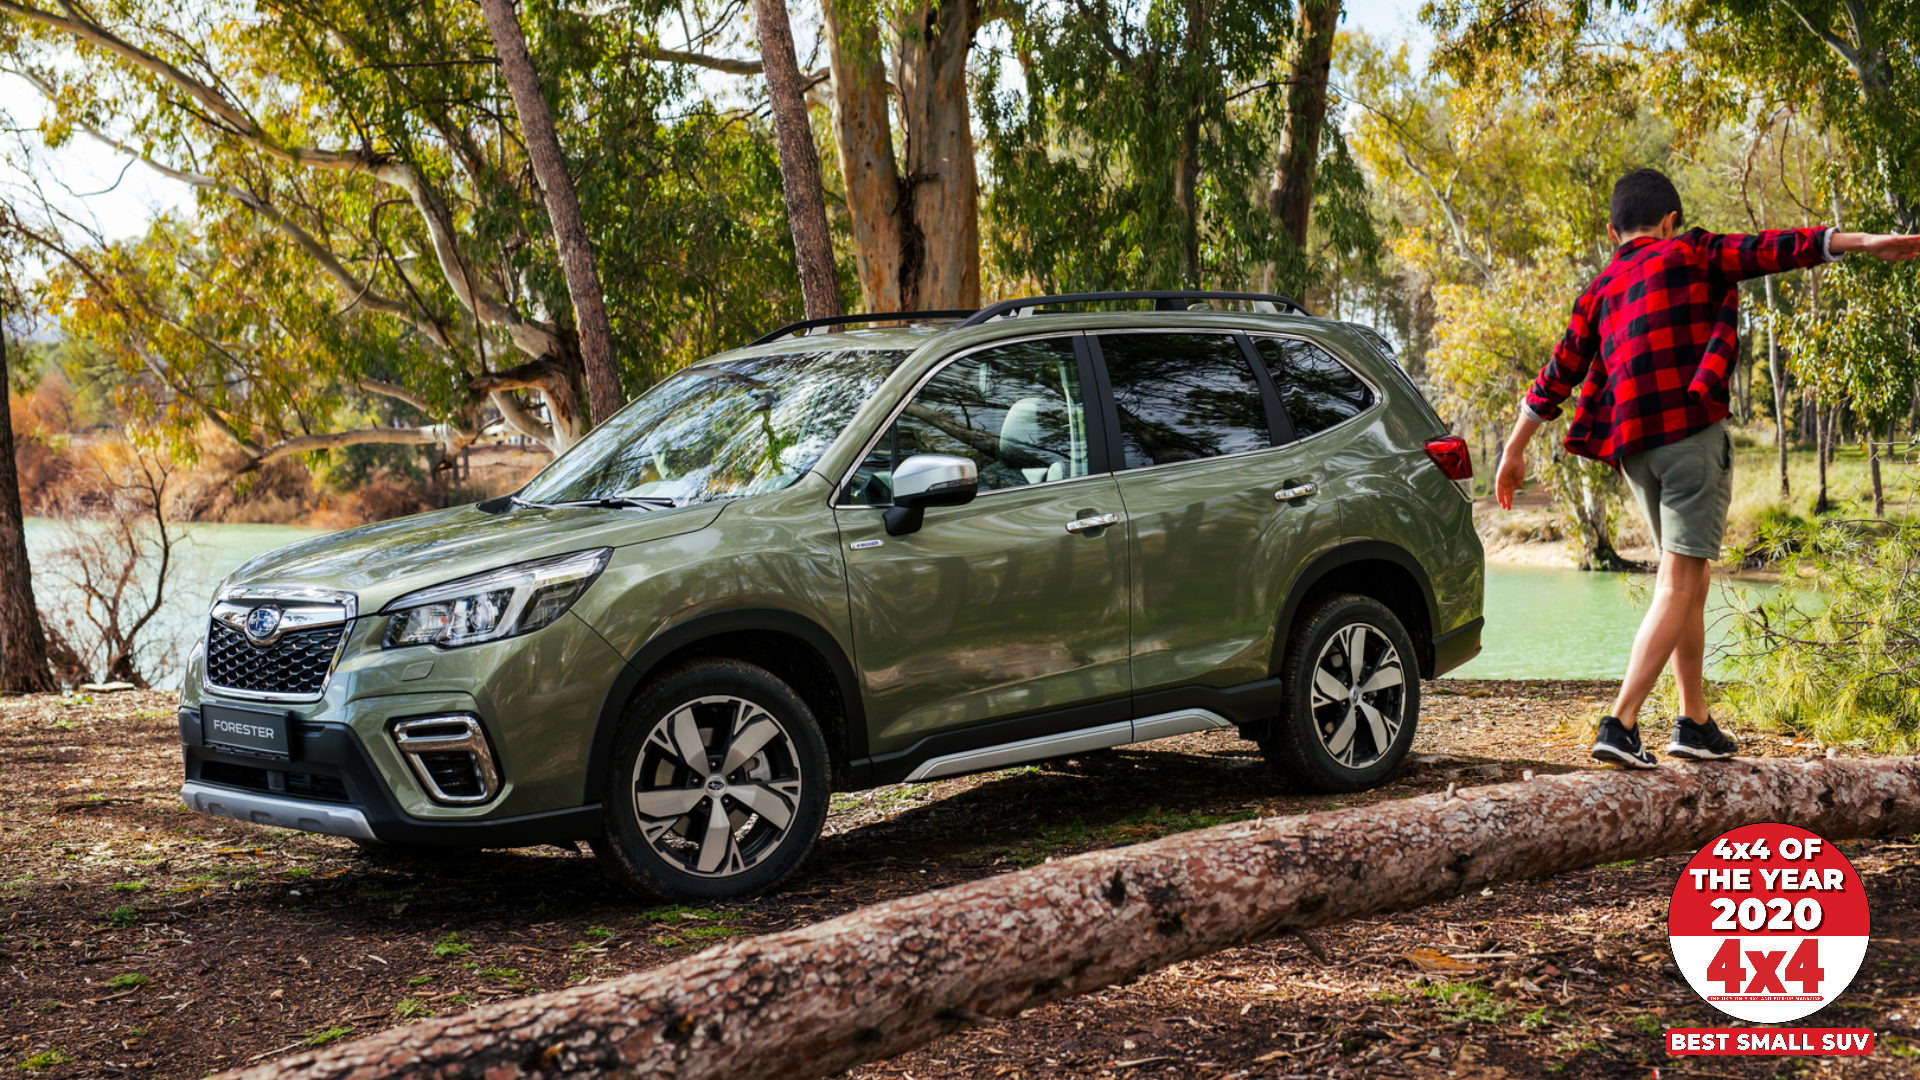 All-New Forester e-BOXER. 4x4 Magazine's Best Small SUV of the Year.